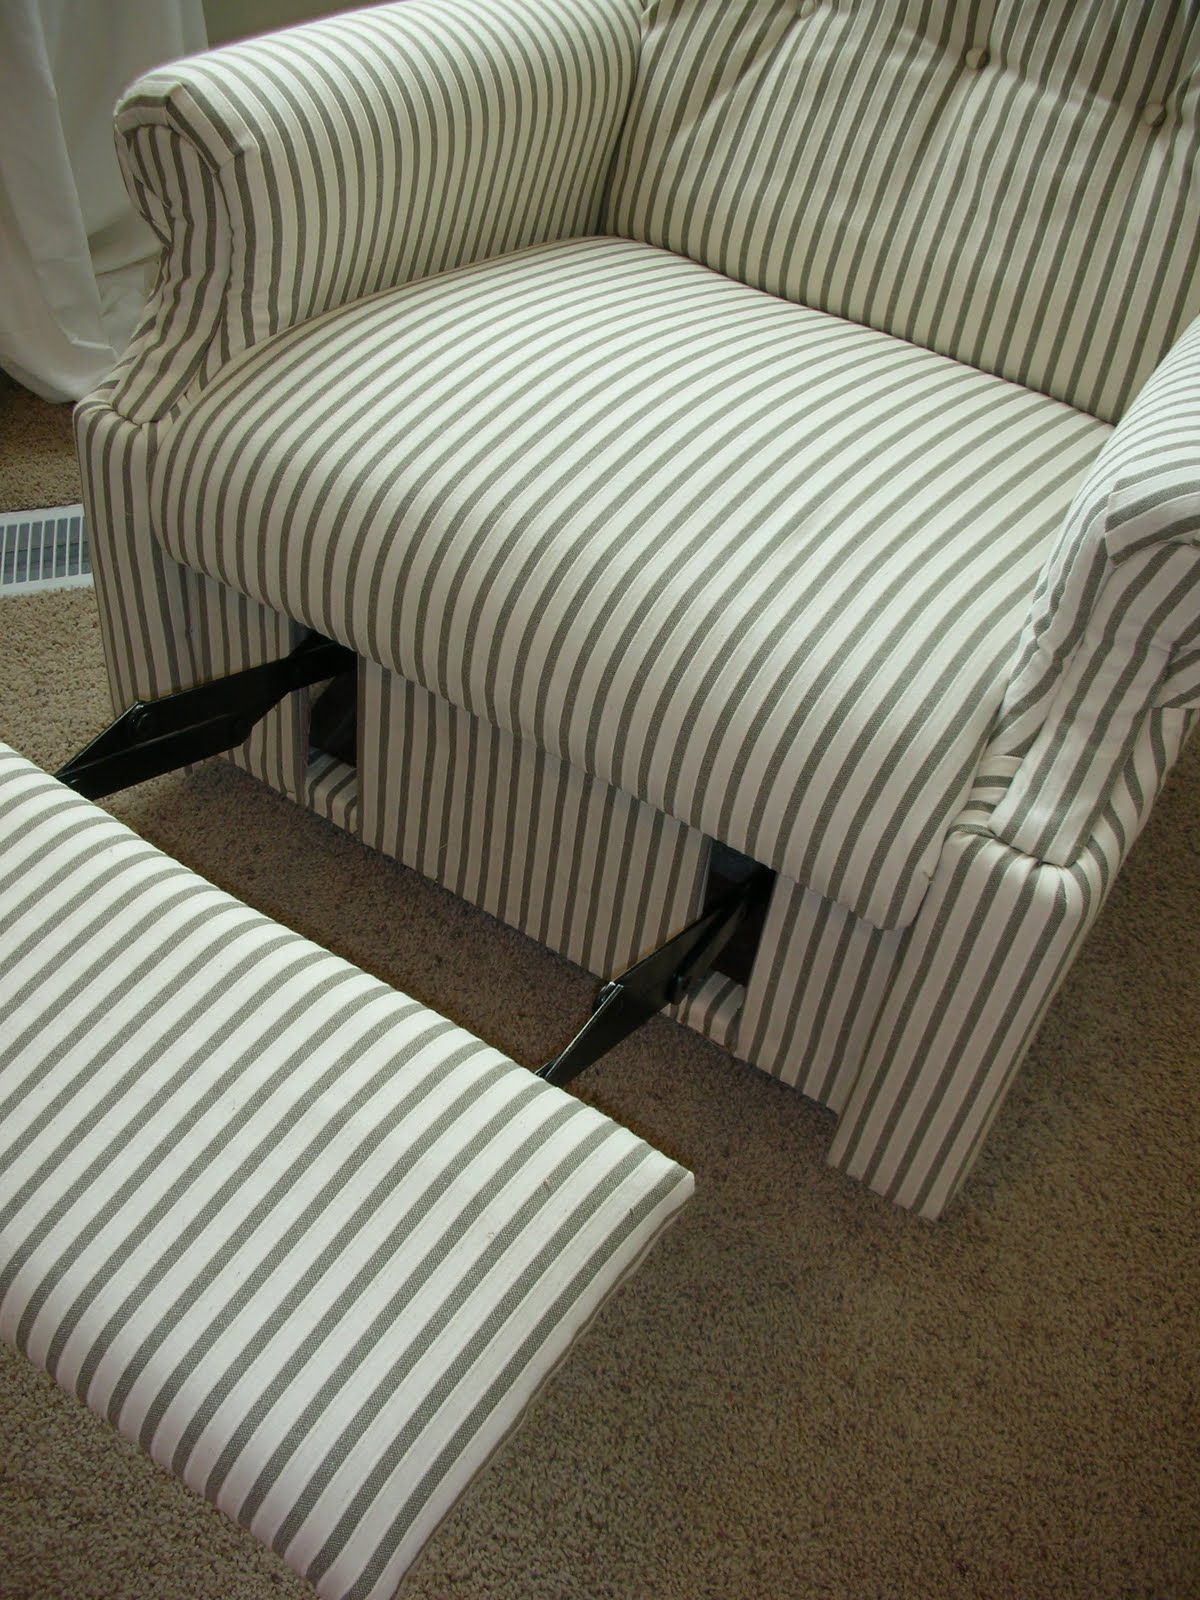 Do It Yourself Divas Diy Reupholster An Old Lazboy Recliner Impressive Lazy Boy Dining Room Sets Design Decoration